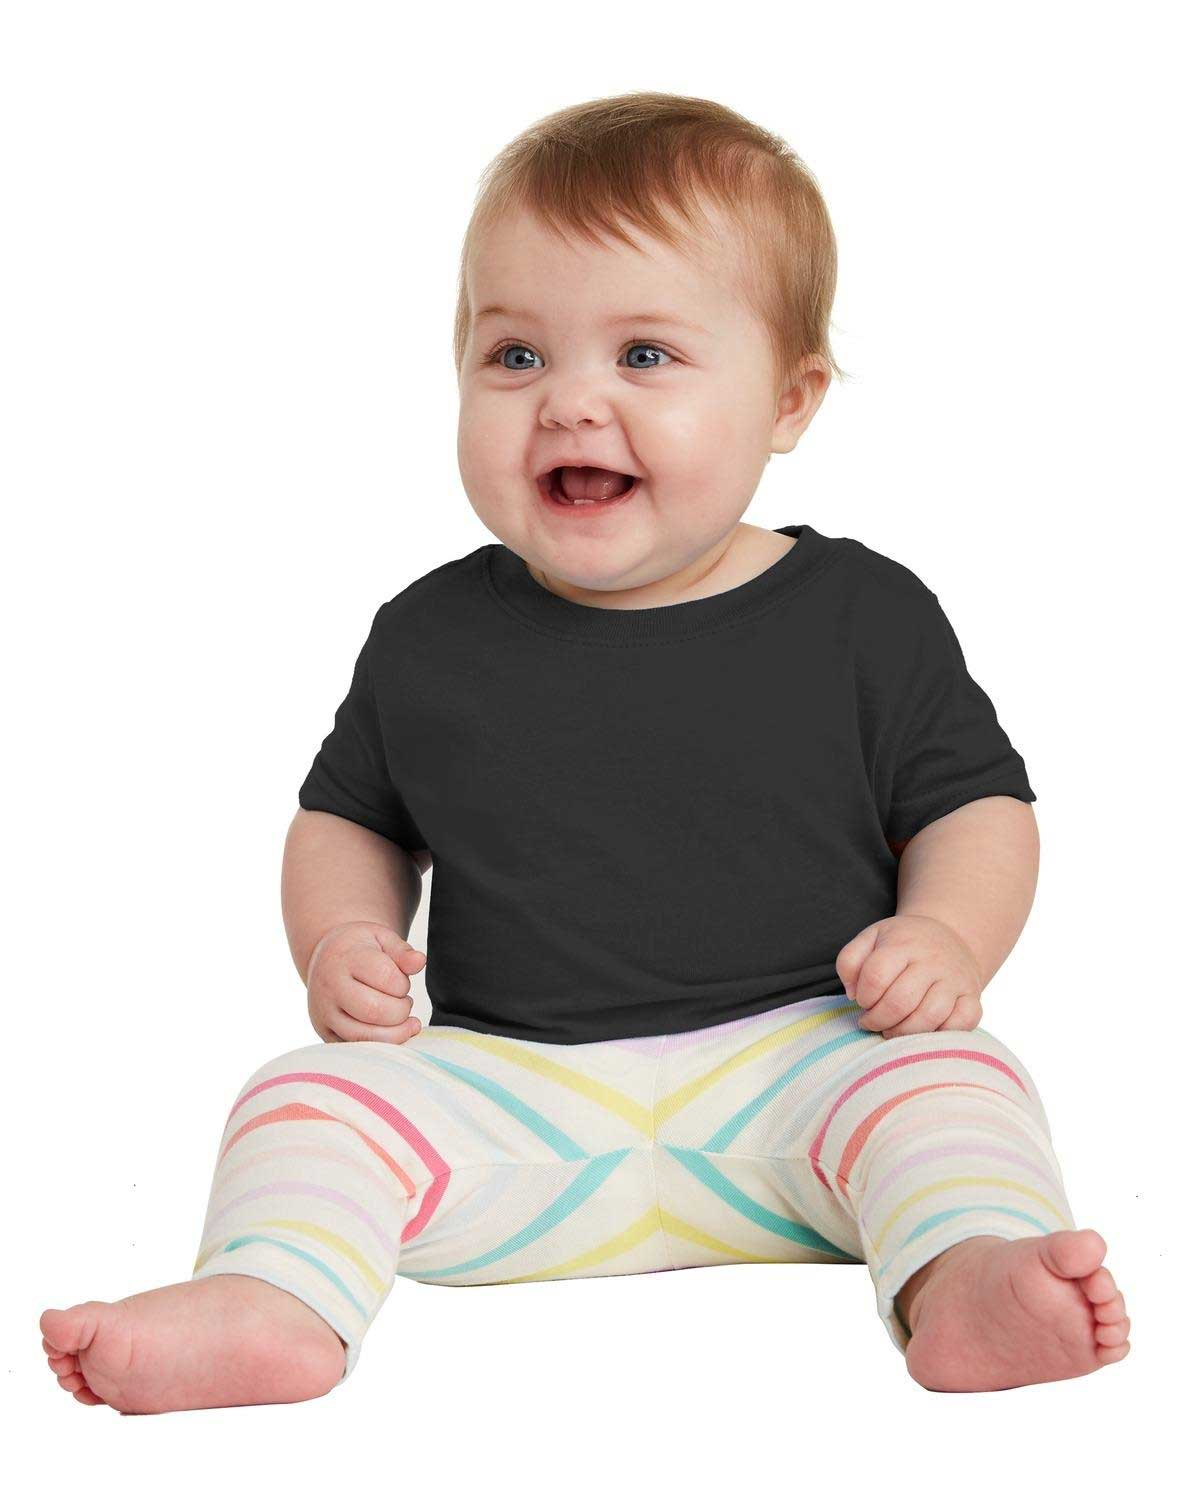 Picture of Rabbit Skins ™  Infant Fine Jersey Tee. RS3322